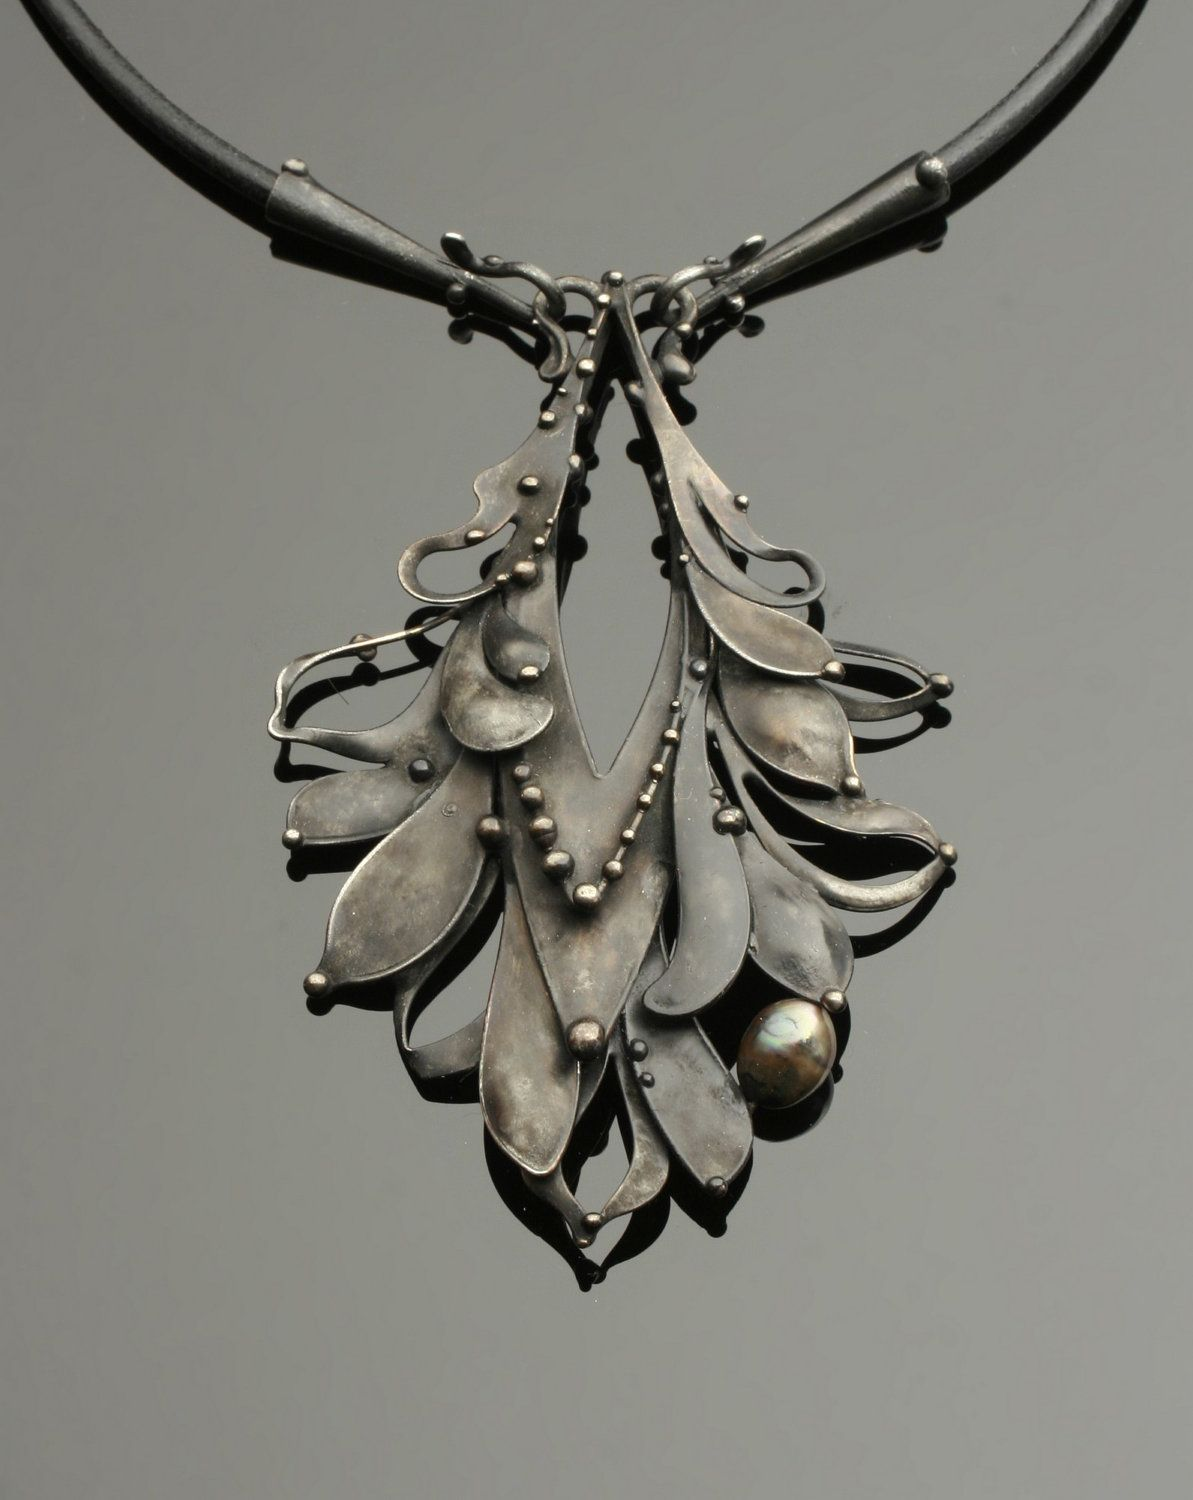 Necklace | Katia Pfipsen Olivova.  Black pearls in mixed metal (sterling silver, copper and lead-free solder) hung on black leather cord. LOVE!